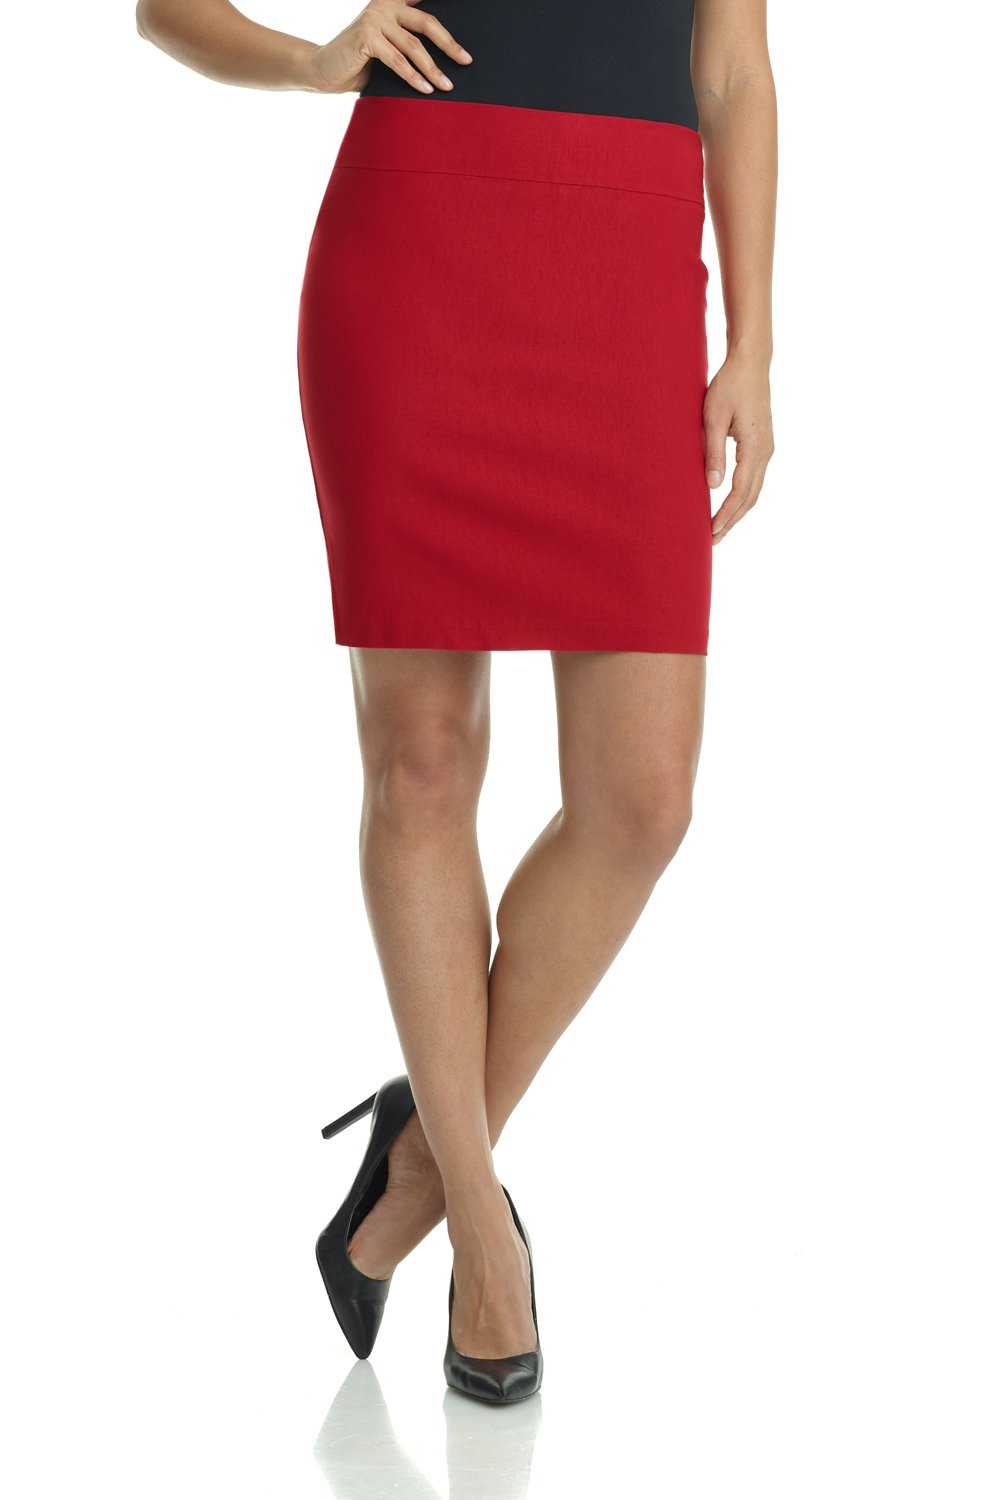 Rekucci Women's Ease in to Comfort Stretchable Above The Knee Pencil Skirt 19'' (Large,Red)